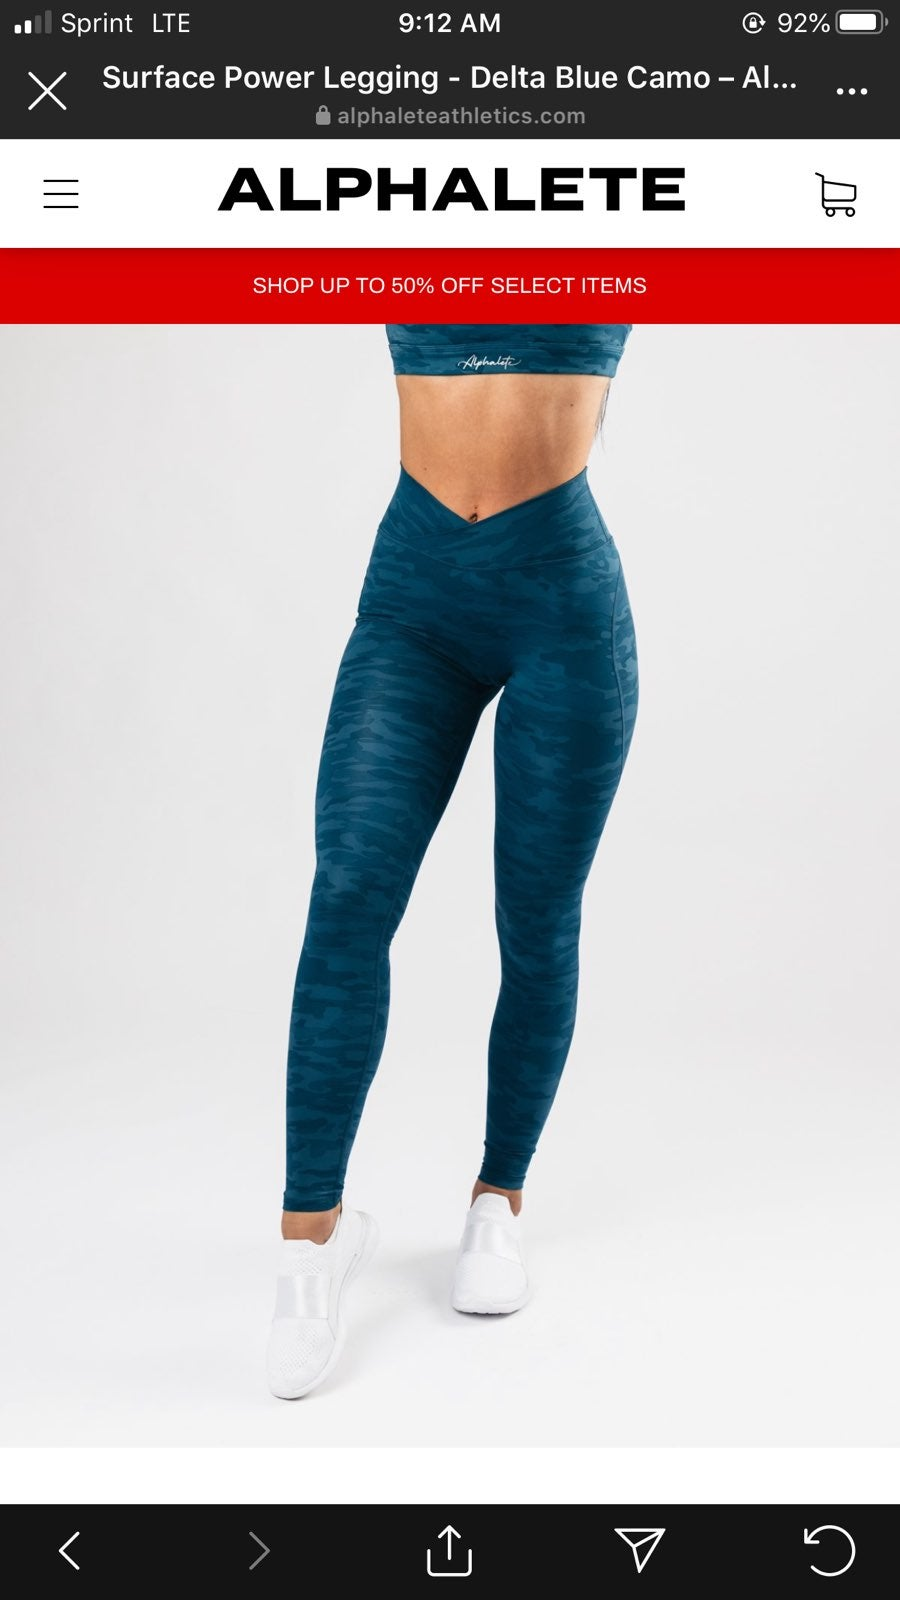 Alphalete Surface Path Legging in Blue c